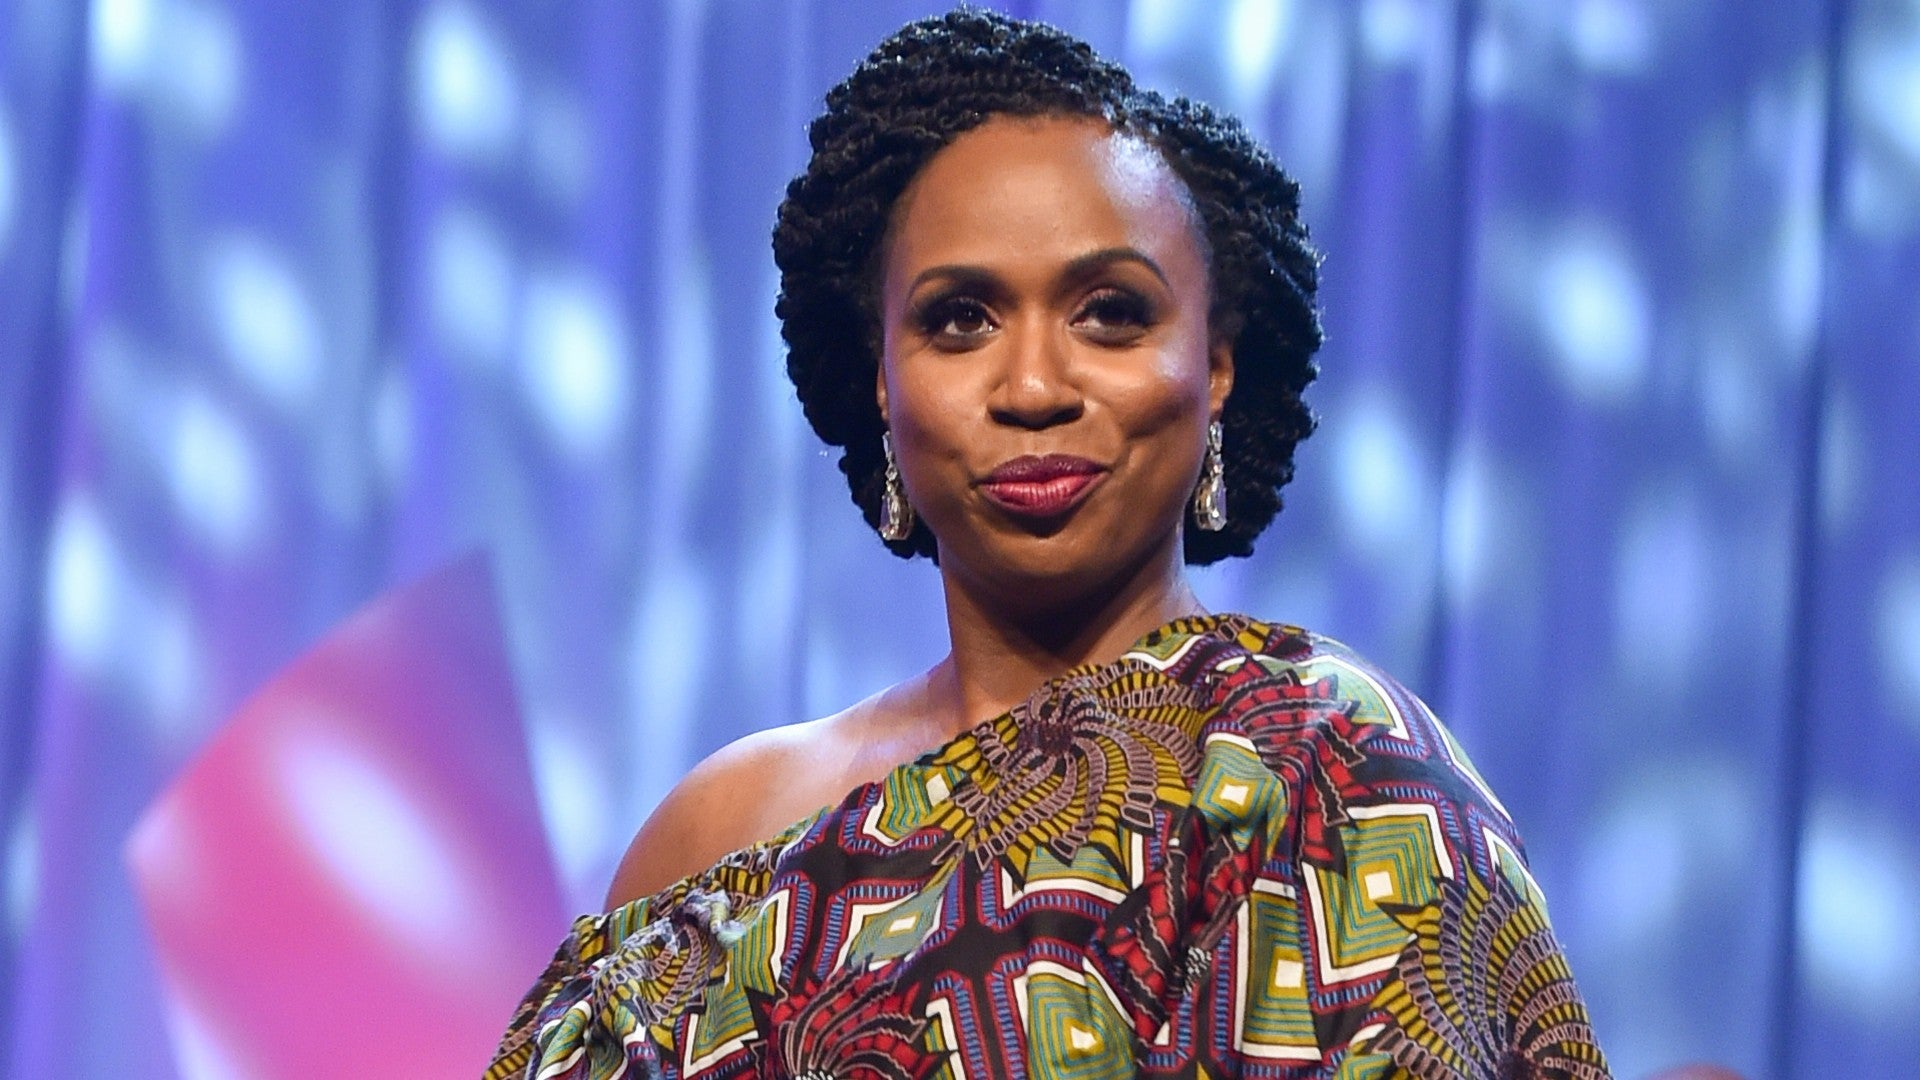 My Social Media Beauty Pick Of The Weekend: Rep. Ayanna Pressley's New Swag